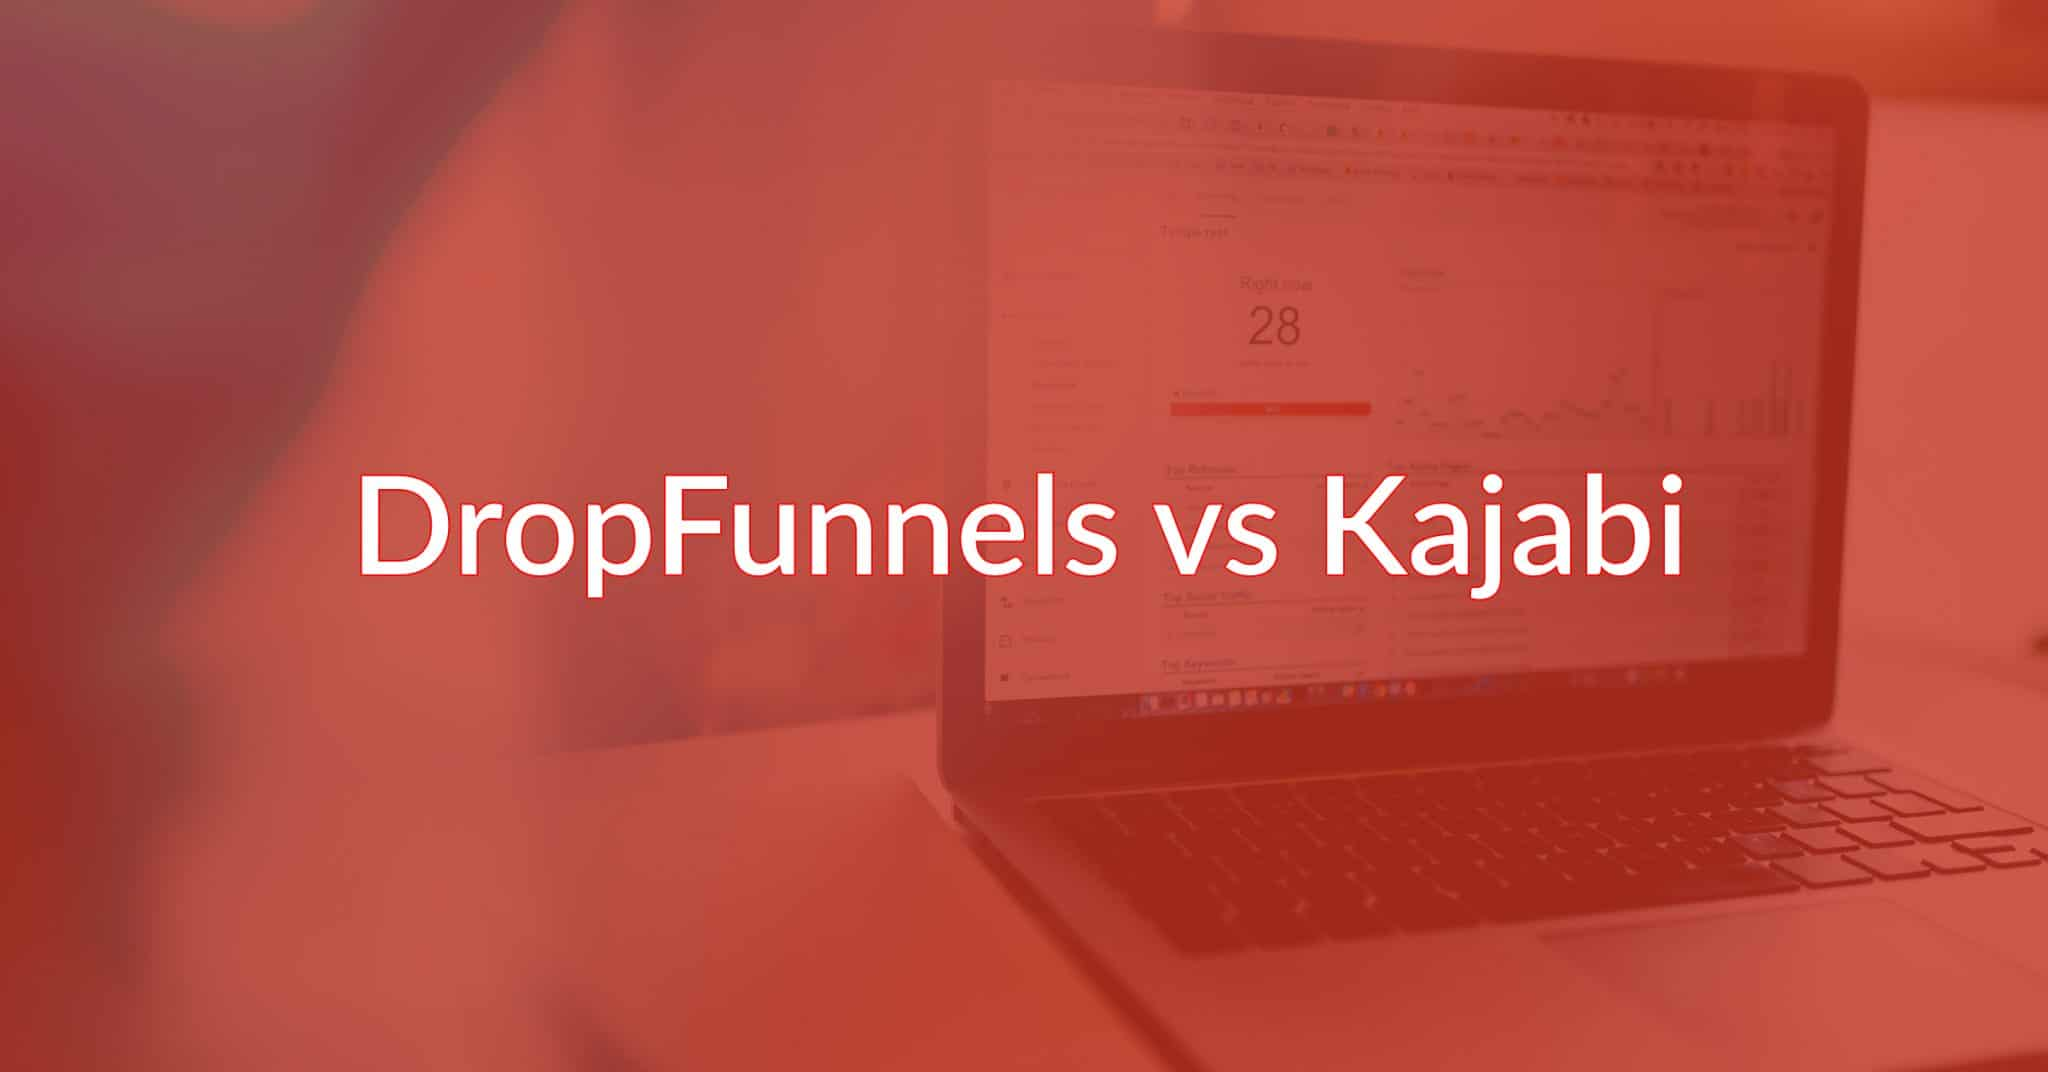 DropFunnels vs Kajabi: One Clear Winner, But Which Is It?